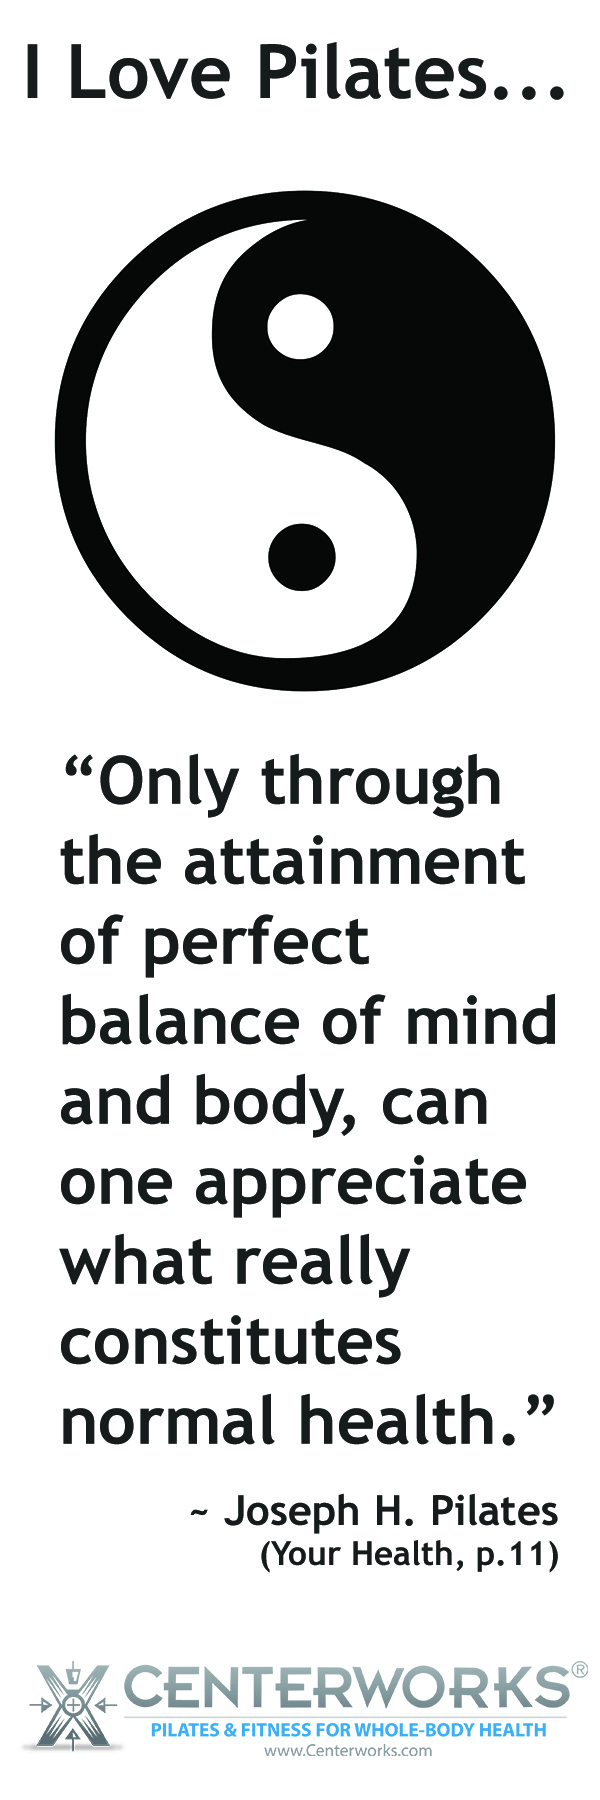 """""""Only through the attainment of perfect balance of mind and body, can one appreciate what really constitutes normal health.""""  ~ Joseph H. Pilates"""